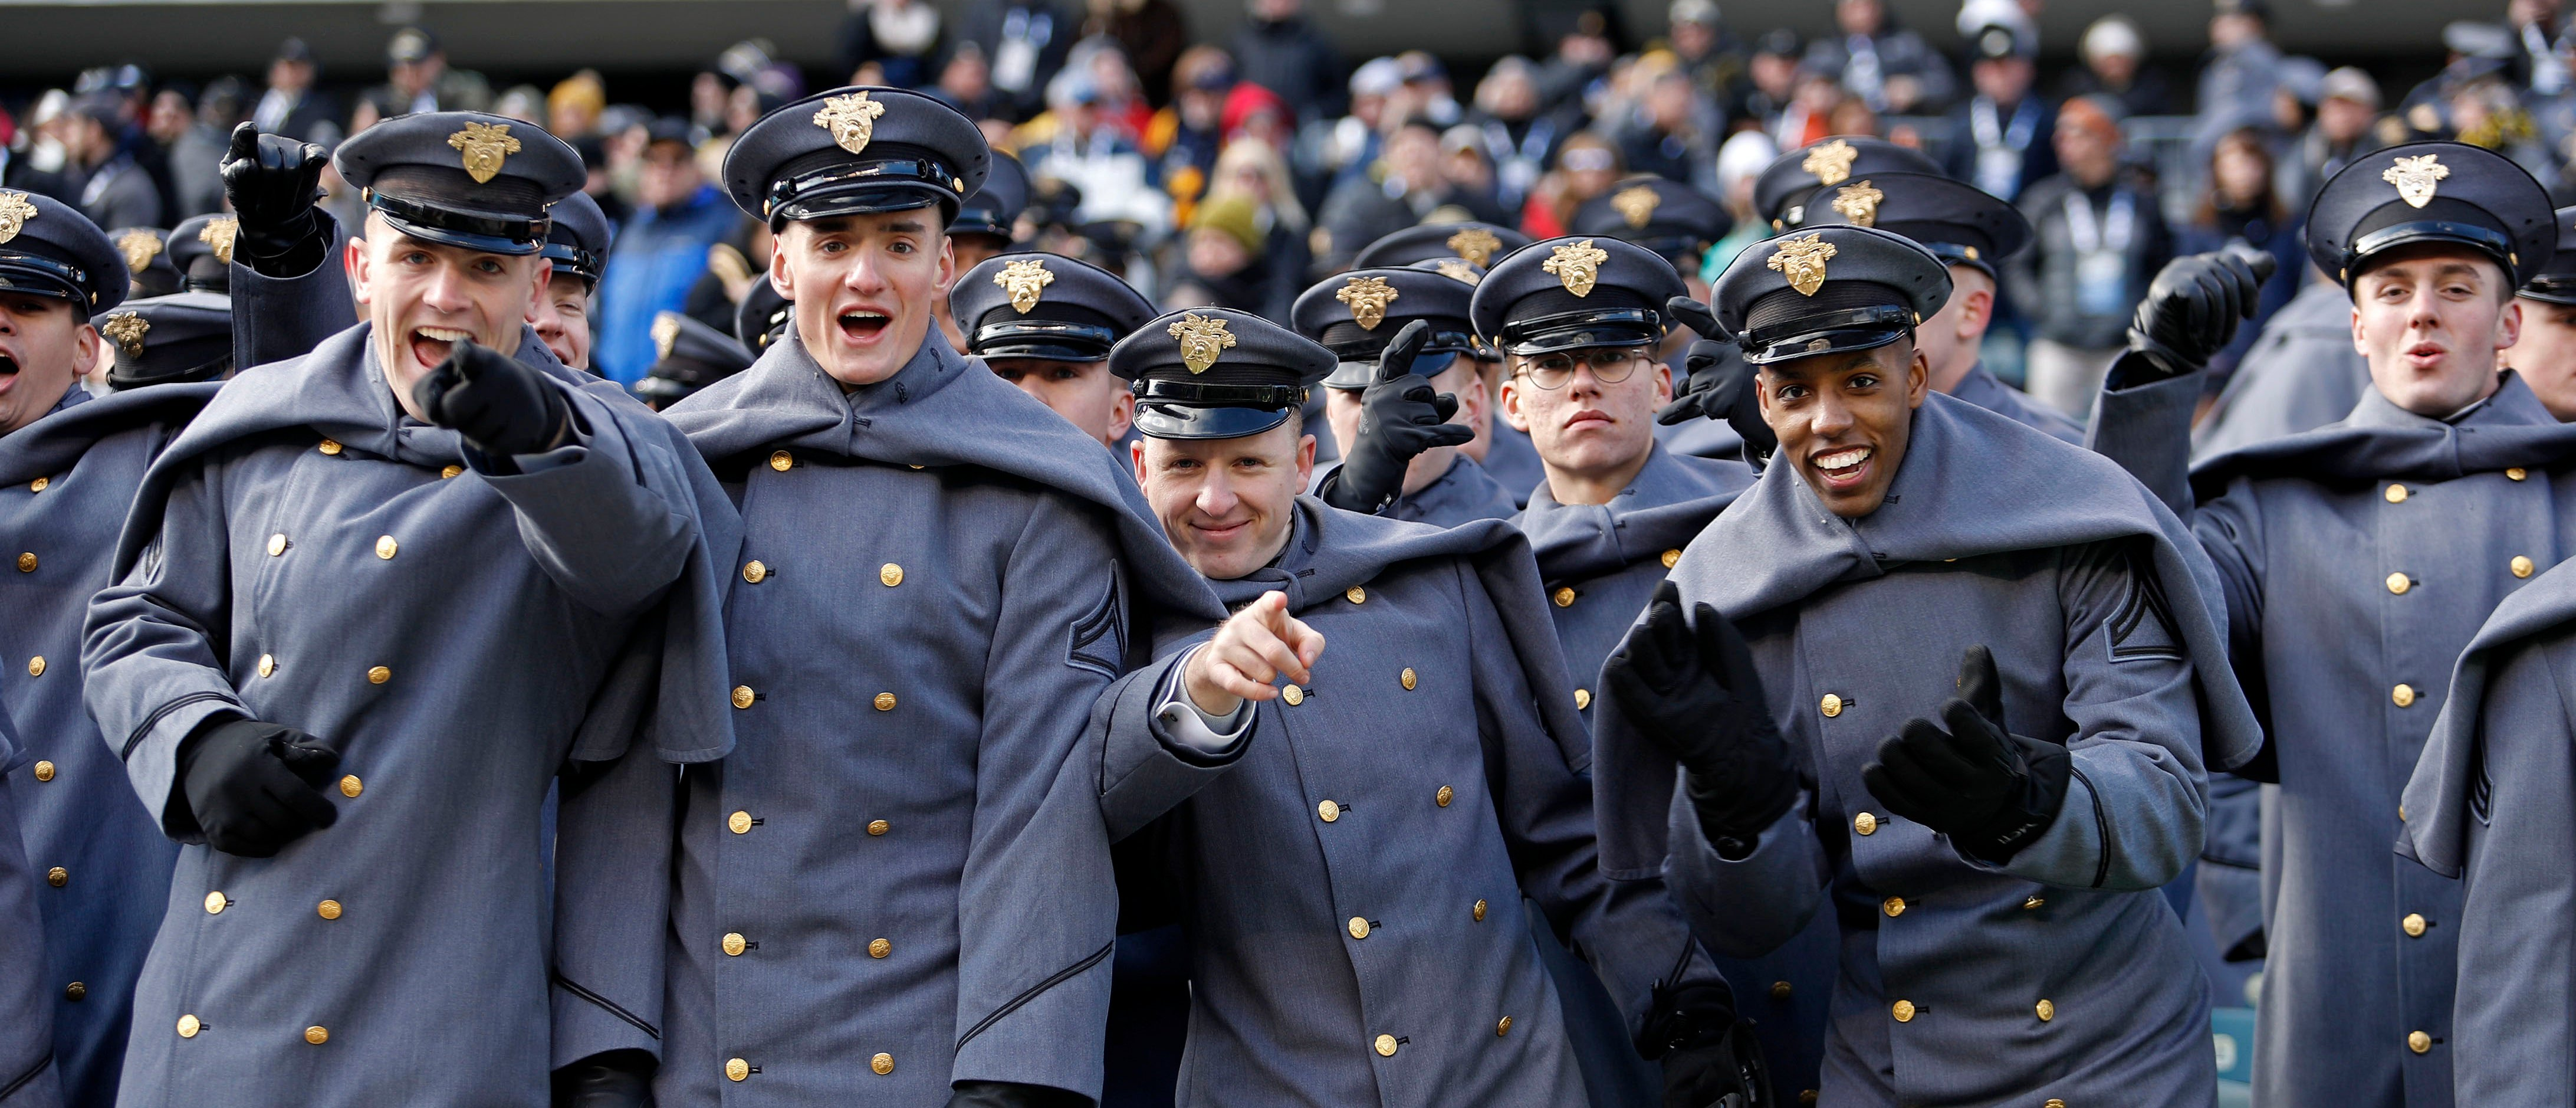 Dec 8, 2018; Philadelphia, PA, USA; The Corps of Cadets from the United States Military Academy at West Point reacts before the 119th Army-Navy game at Lincoln Financial Field. Mandatory Credit: Danny Wild-USA TODAY Sports